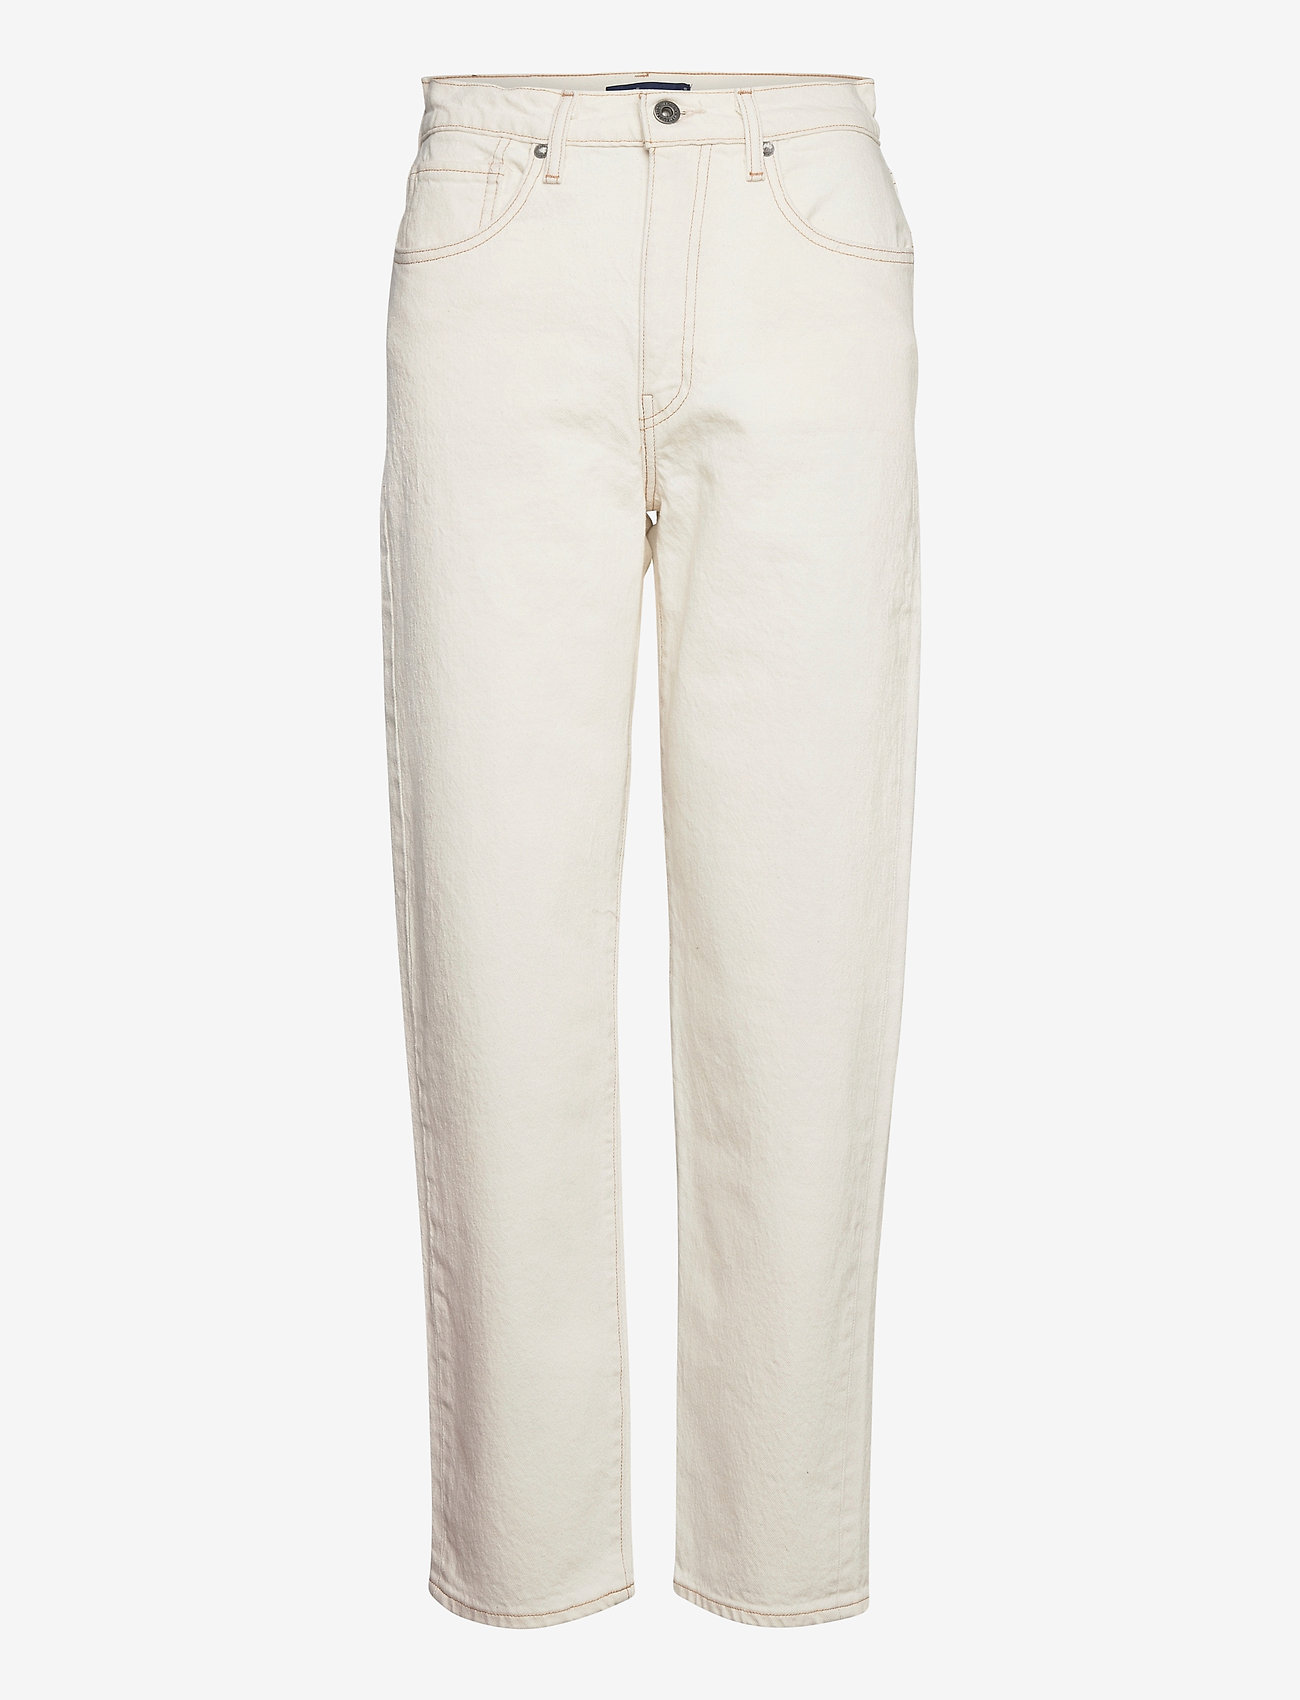 Levi's Made & Crafted - LMC THE COLUMN LMC TRACKS - straight jeans - neutrals - 0